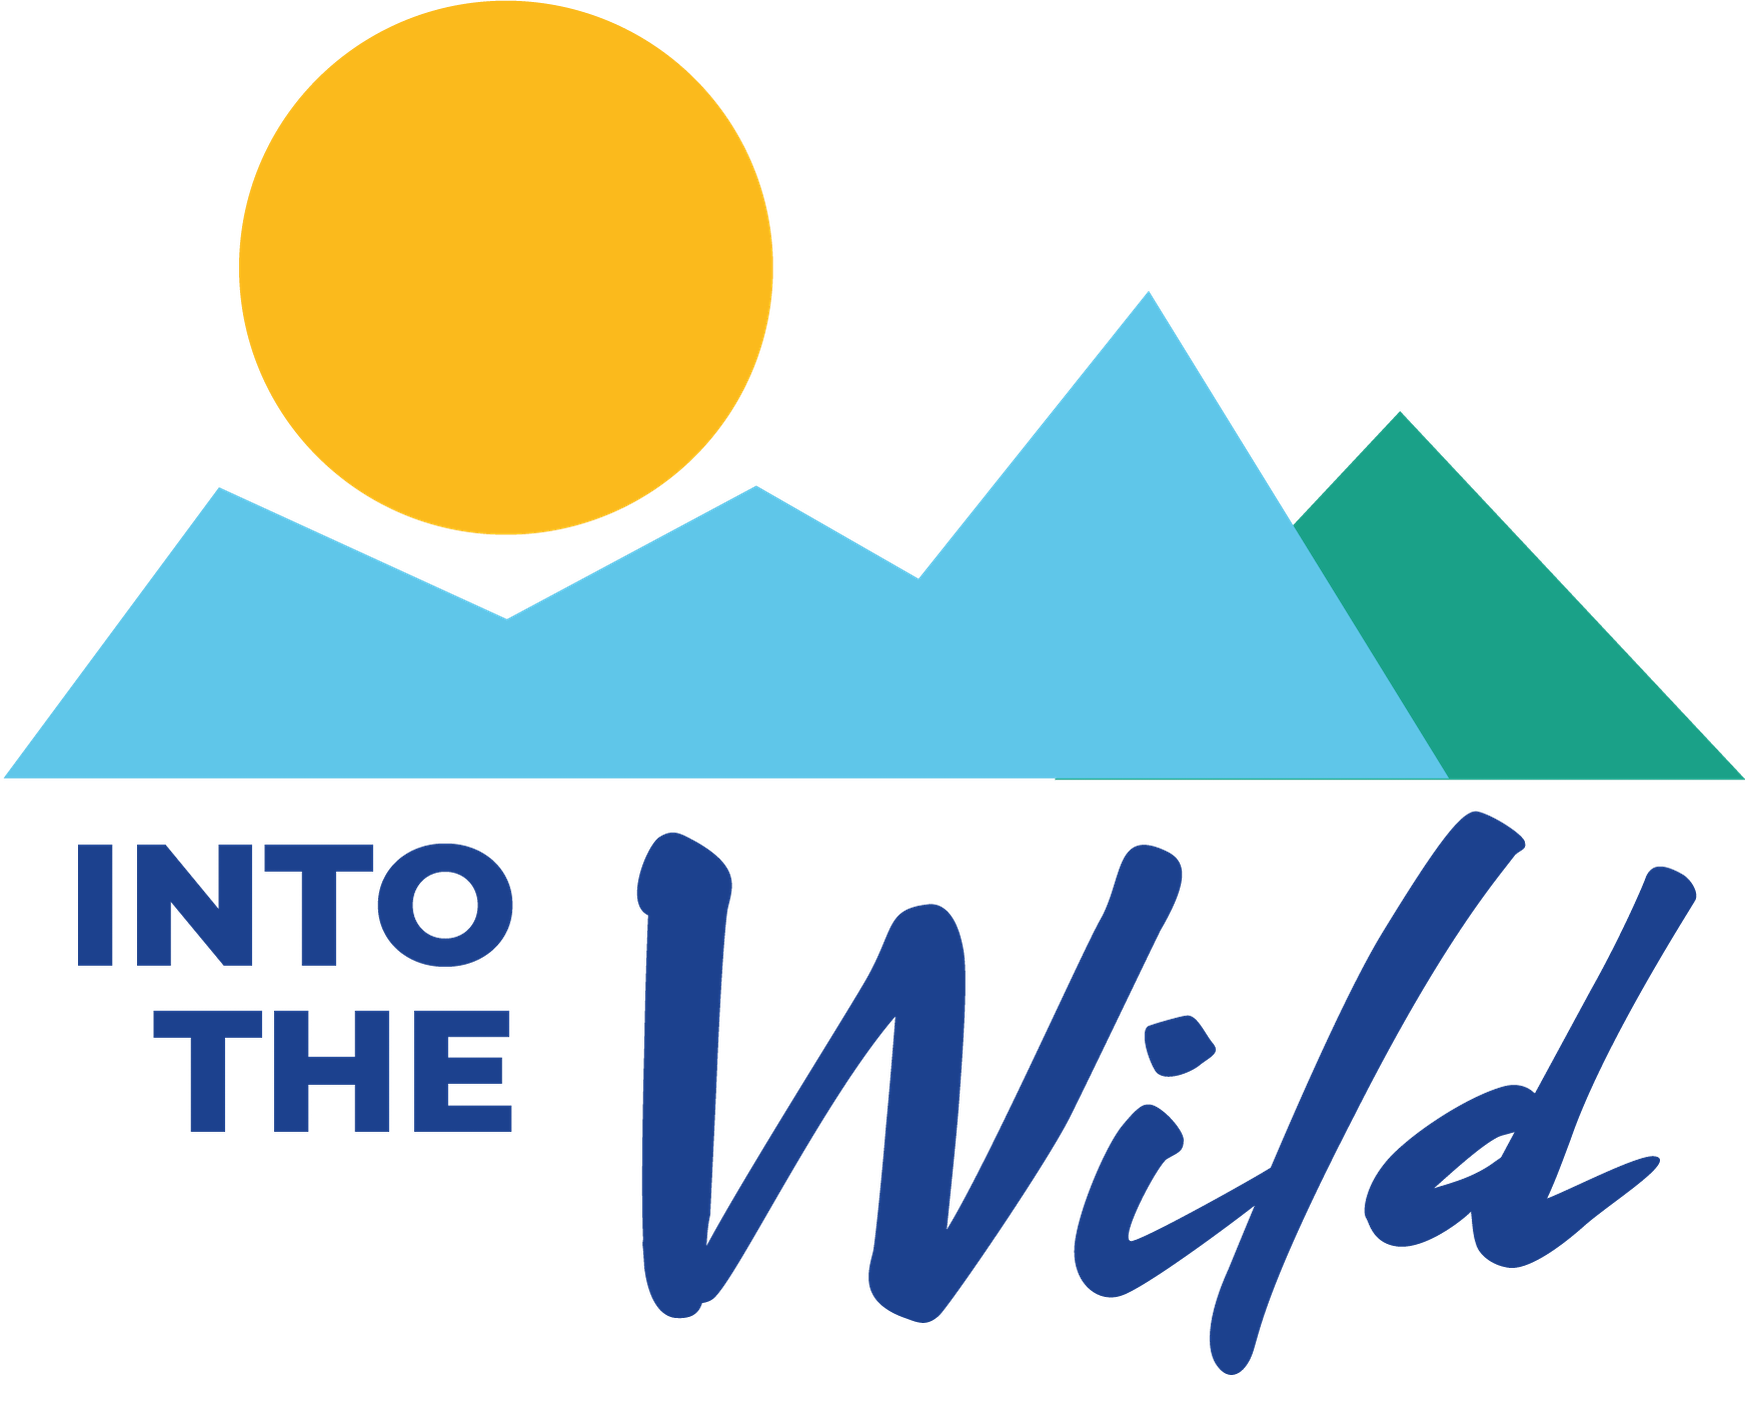 INTO THE WILD - A YEAR LONG JOURNEY OF ENCOUNTER WITH GOD